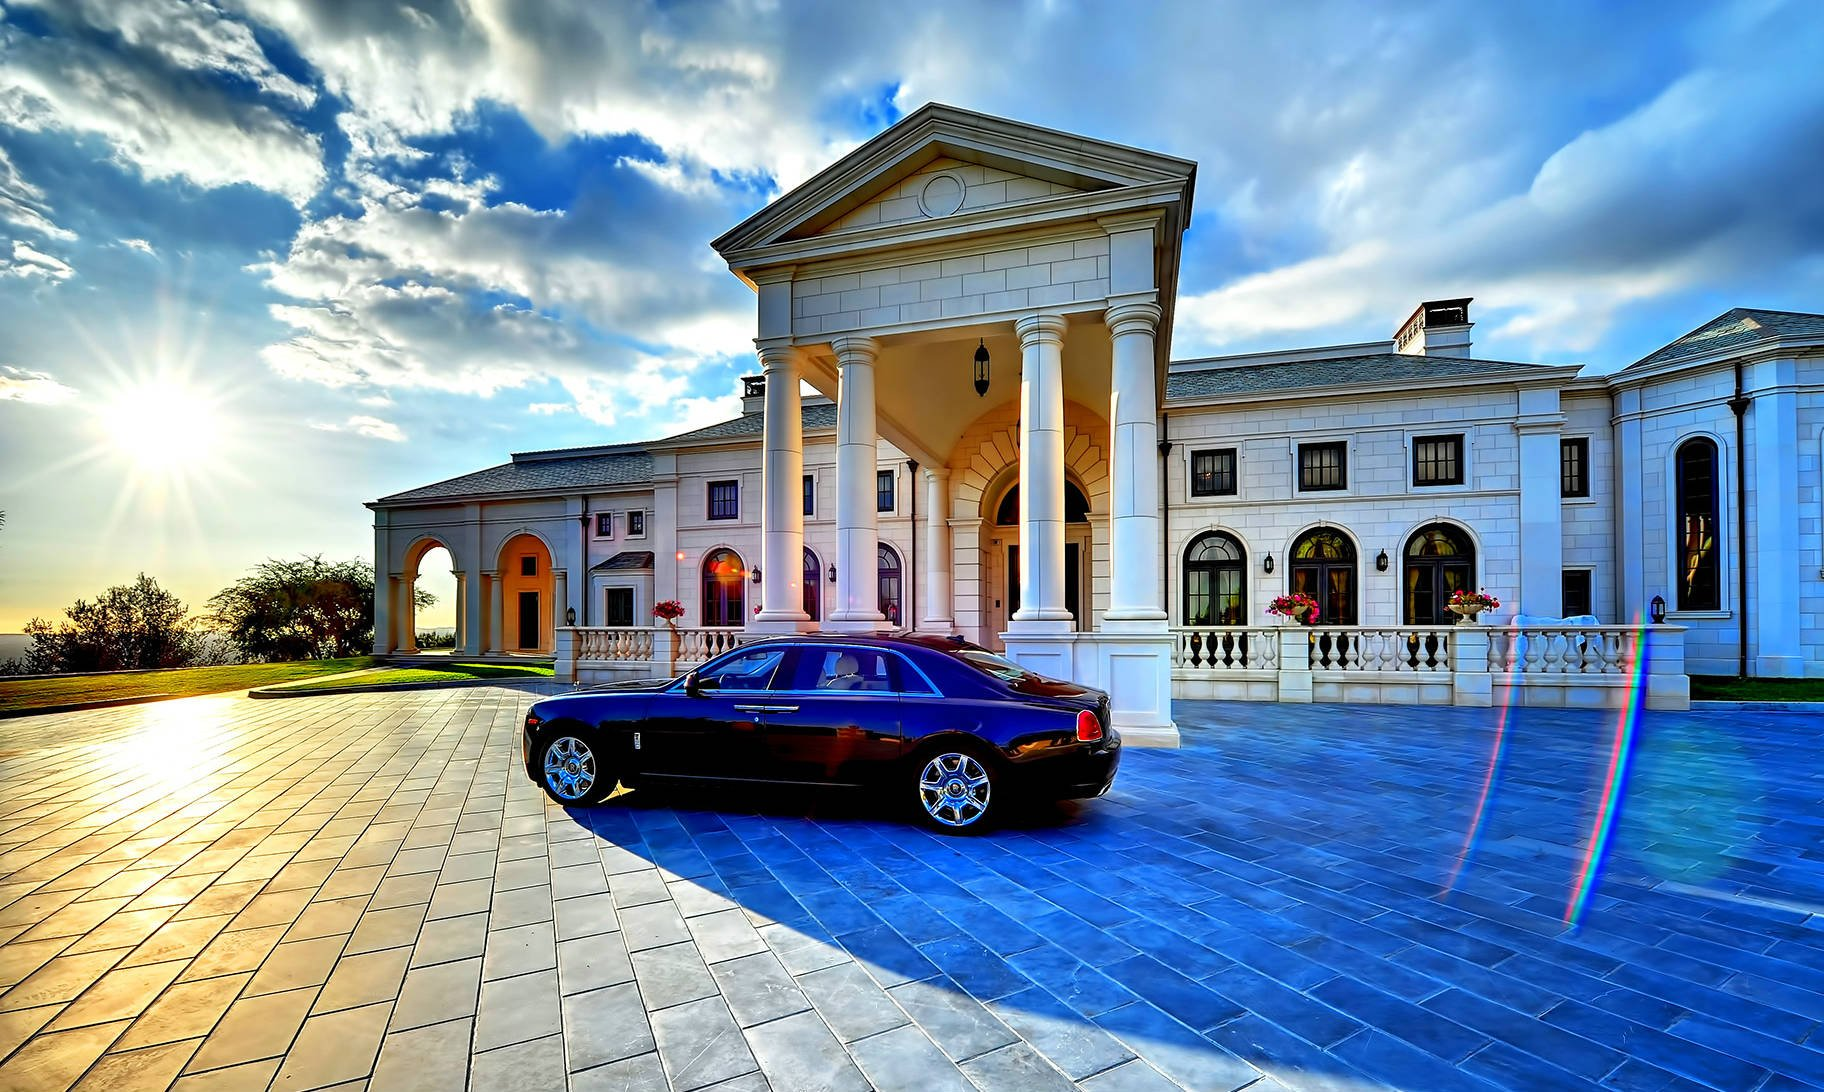 Mansion house building architecture interior design for Wallpaper luxury home